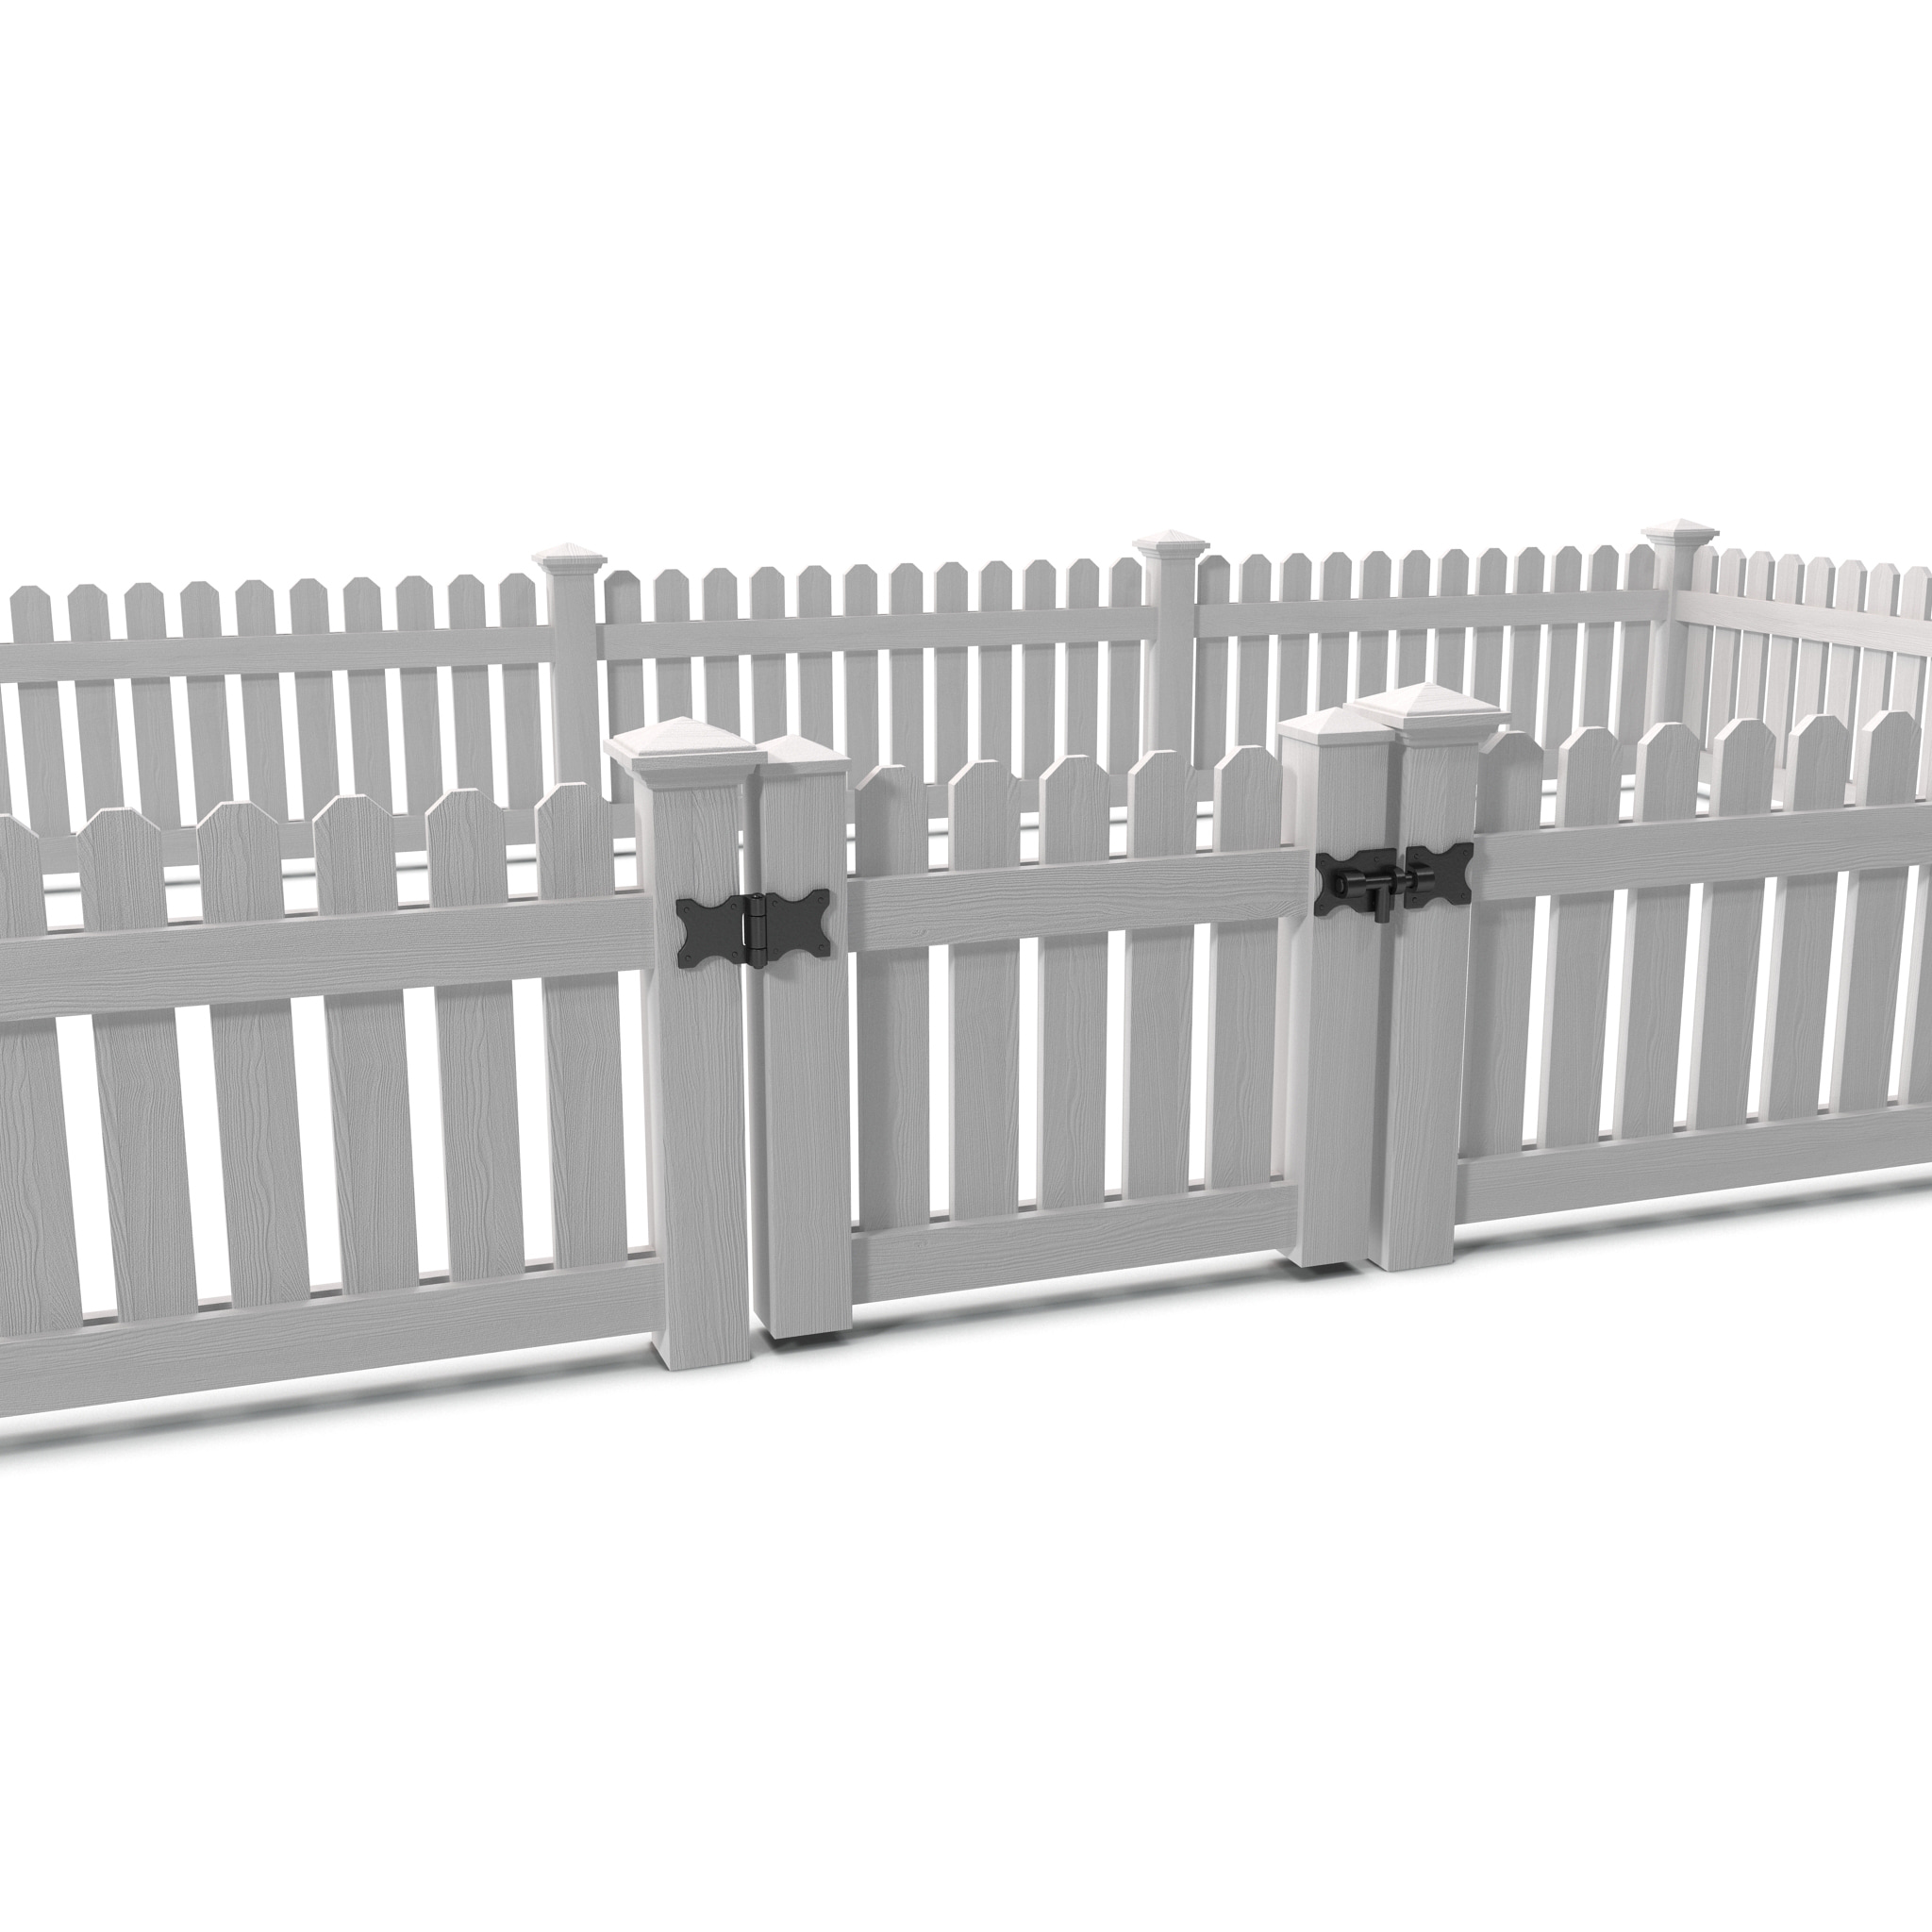 Picket Fence_98.jpg